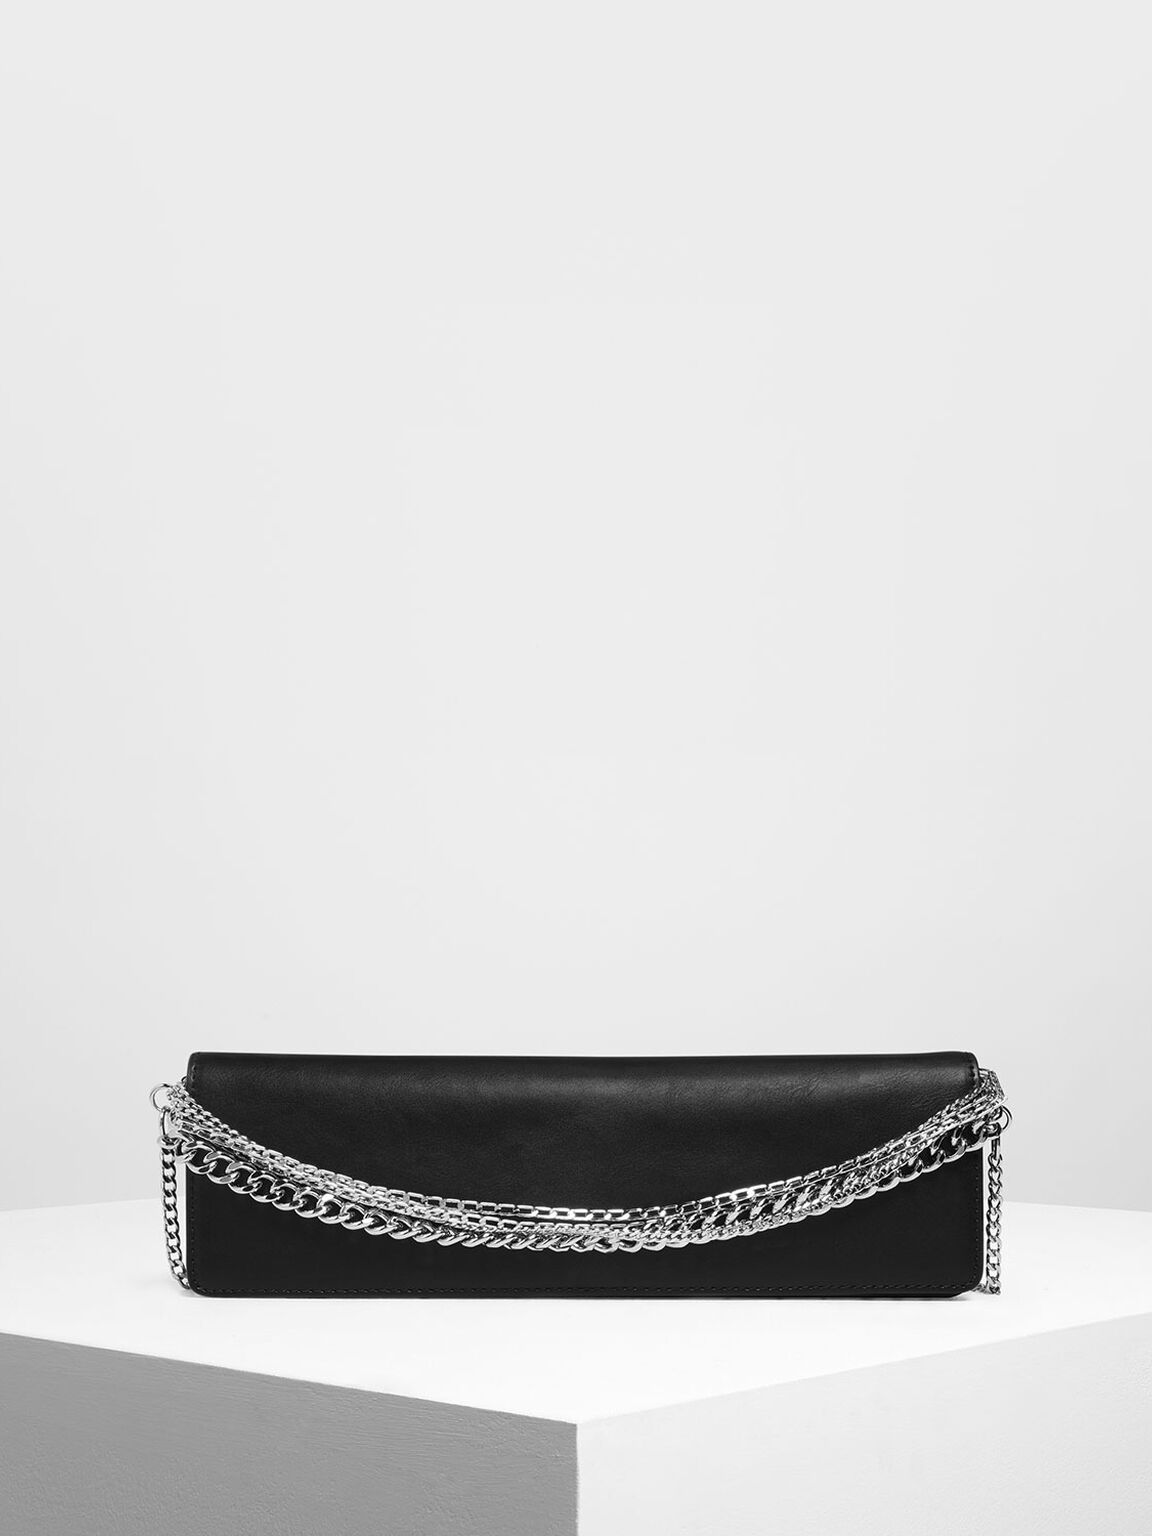 Chunky Chain Handle Bar Clutch, Black, hi-res